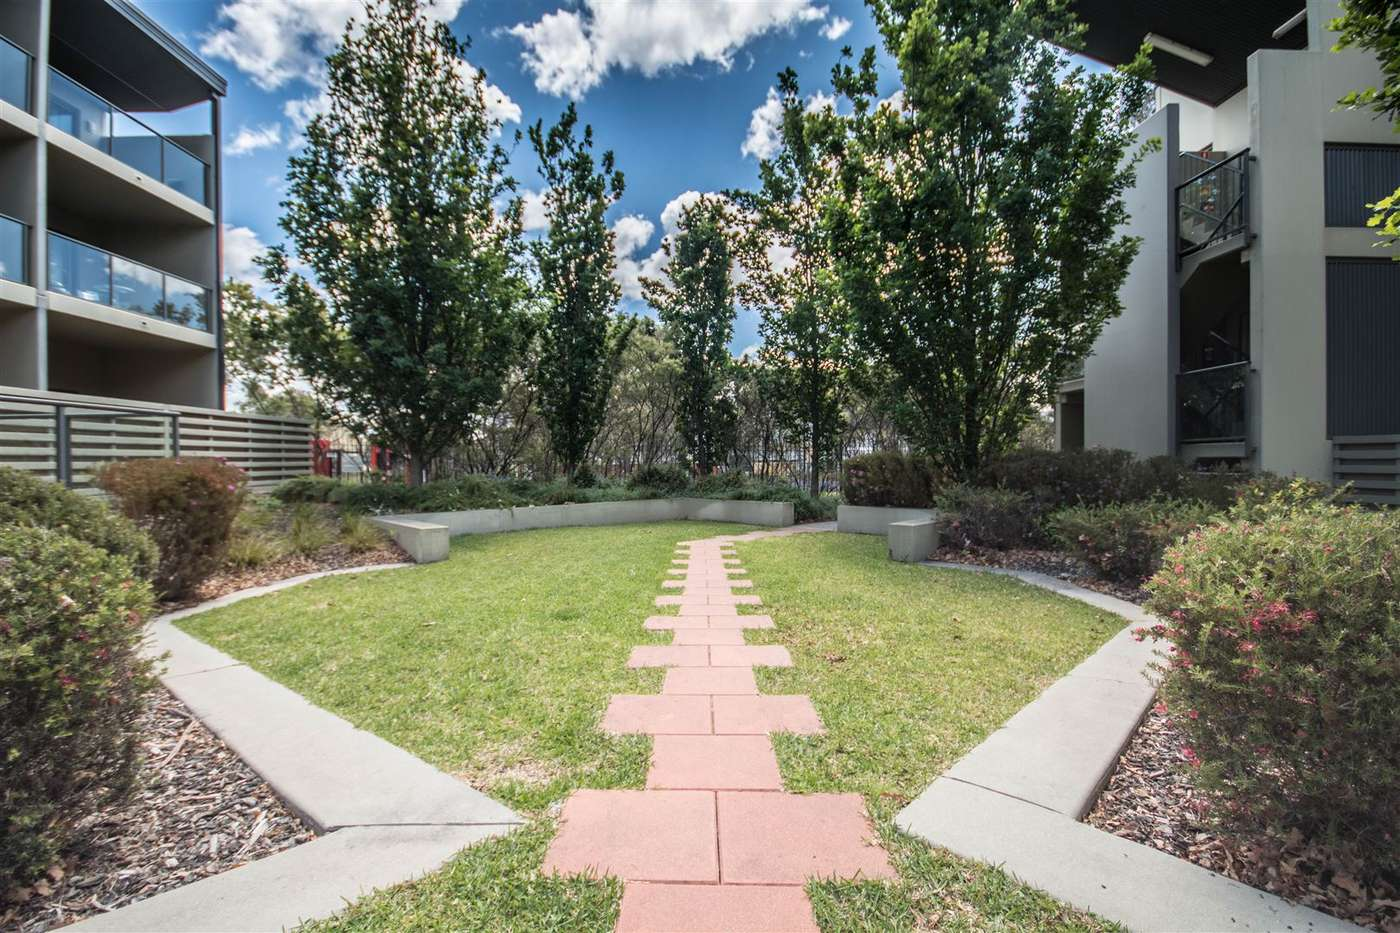 Main view of Homely unit listing, 104/1 Braybrooke Street, Bruce, ACT 2617